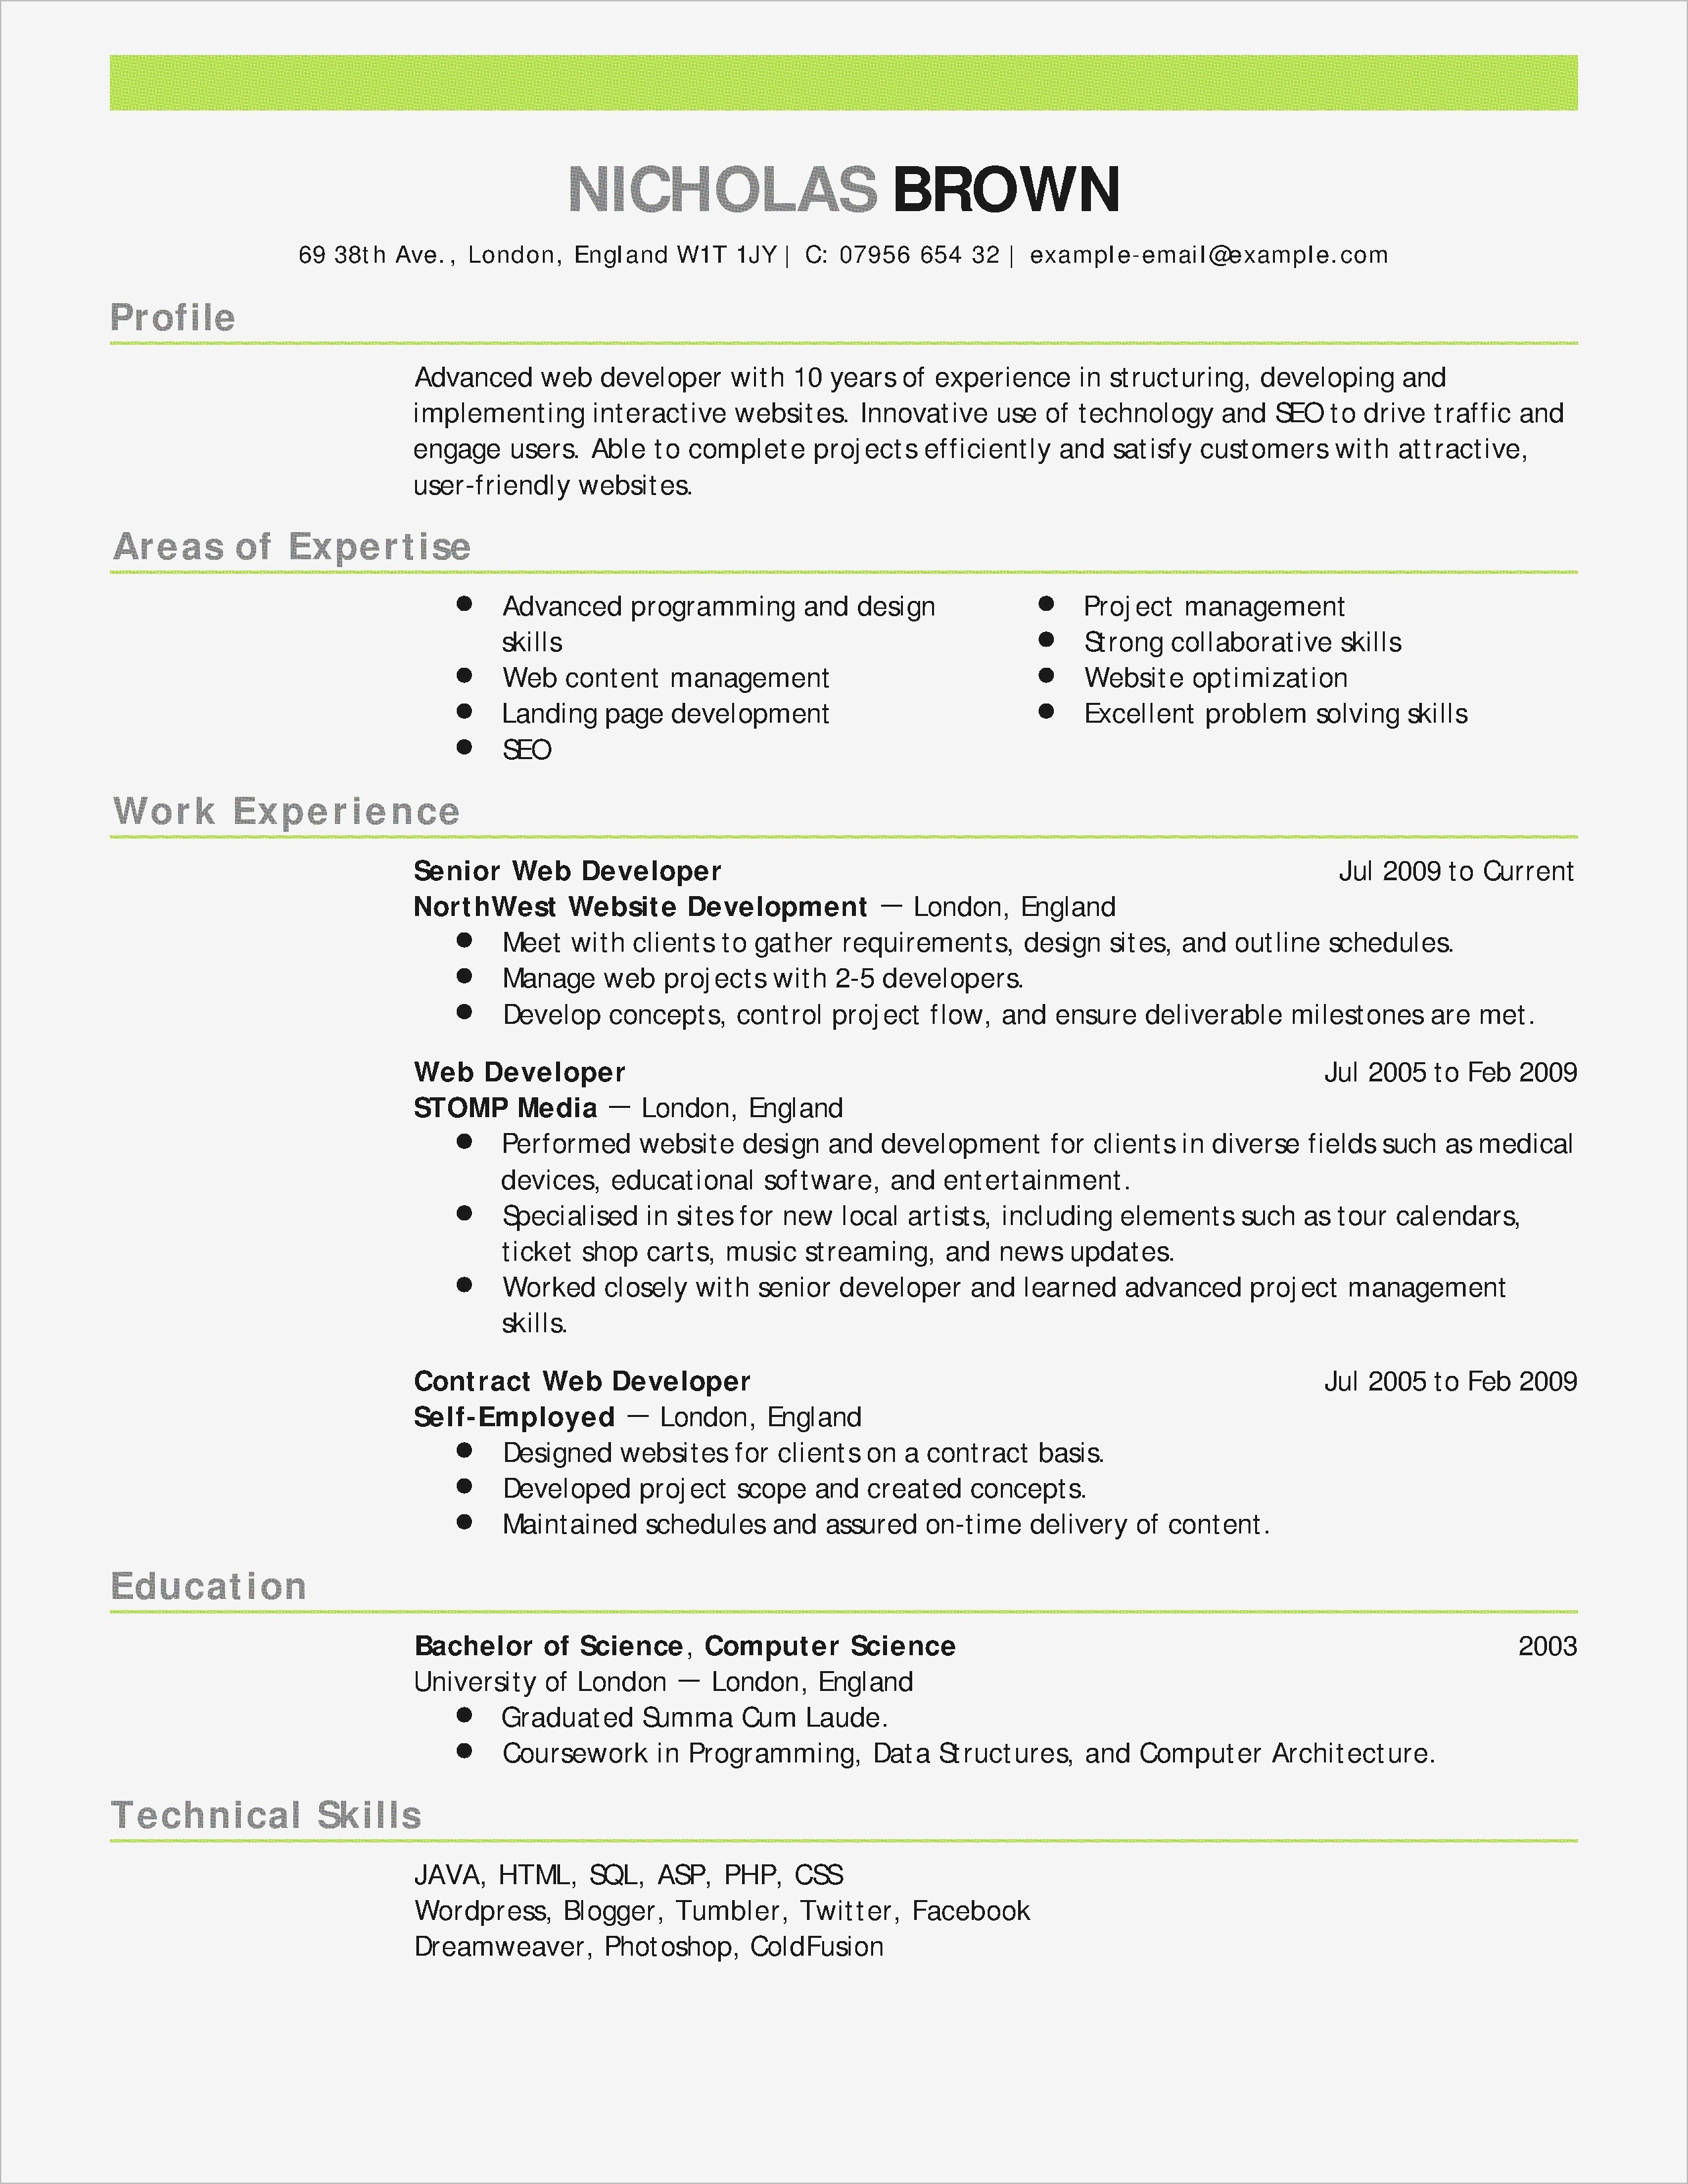 Email Template for Letter Of Recommendation - How to format A Job Resume Reference Luxury Examples Resumes